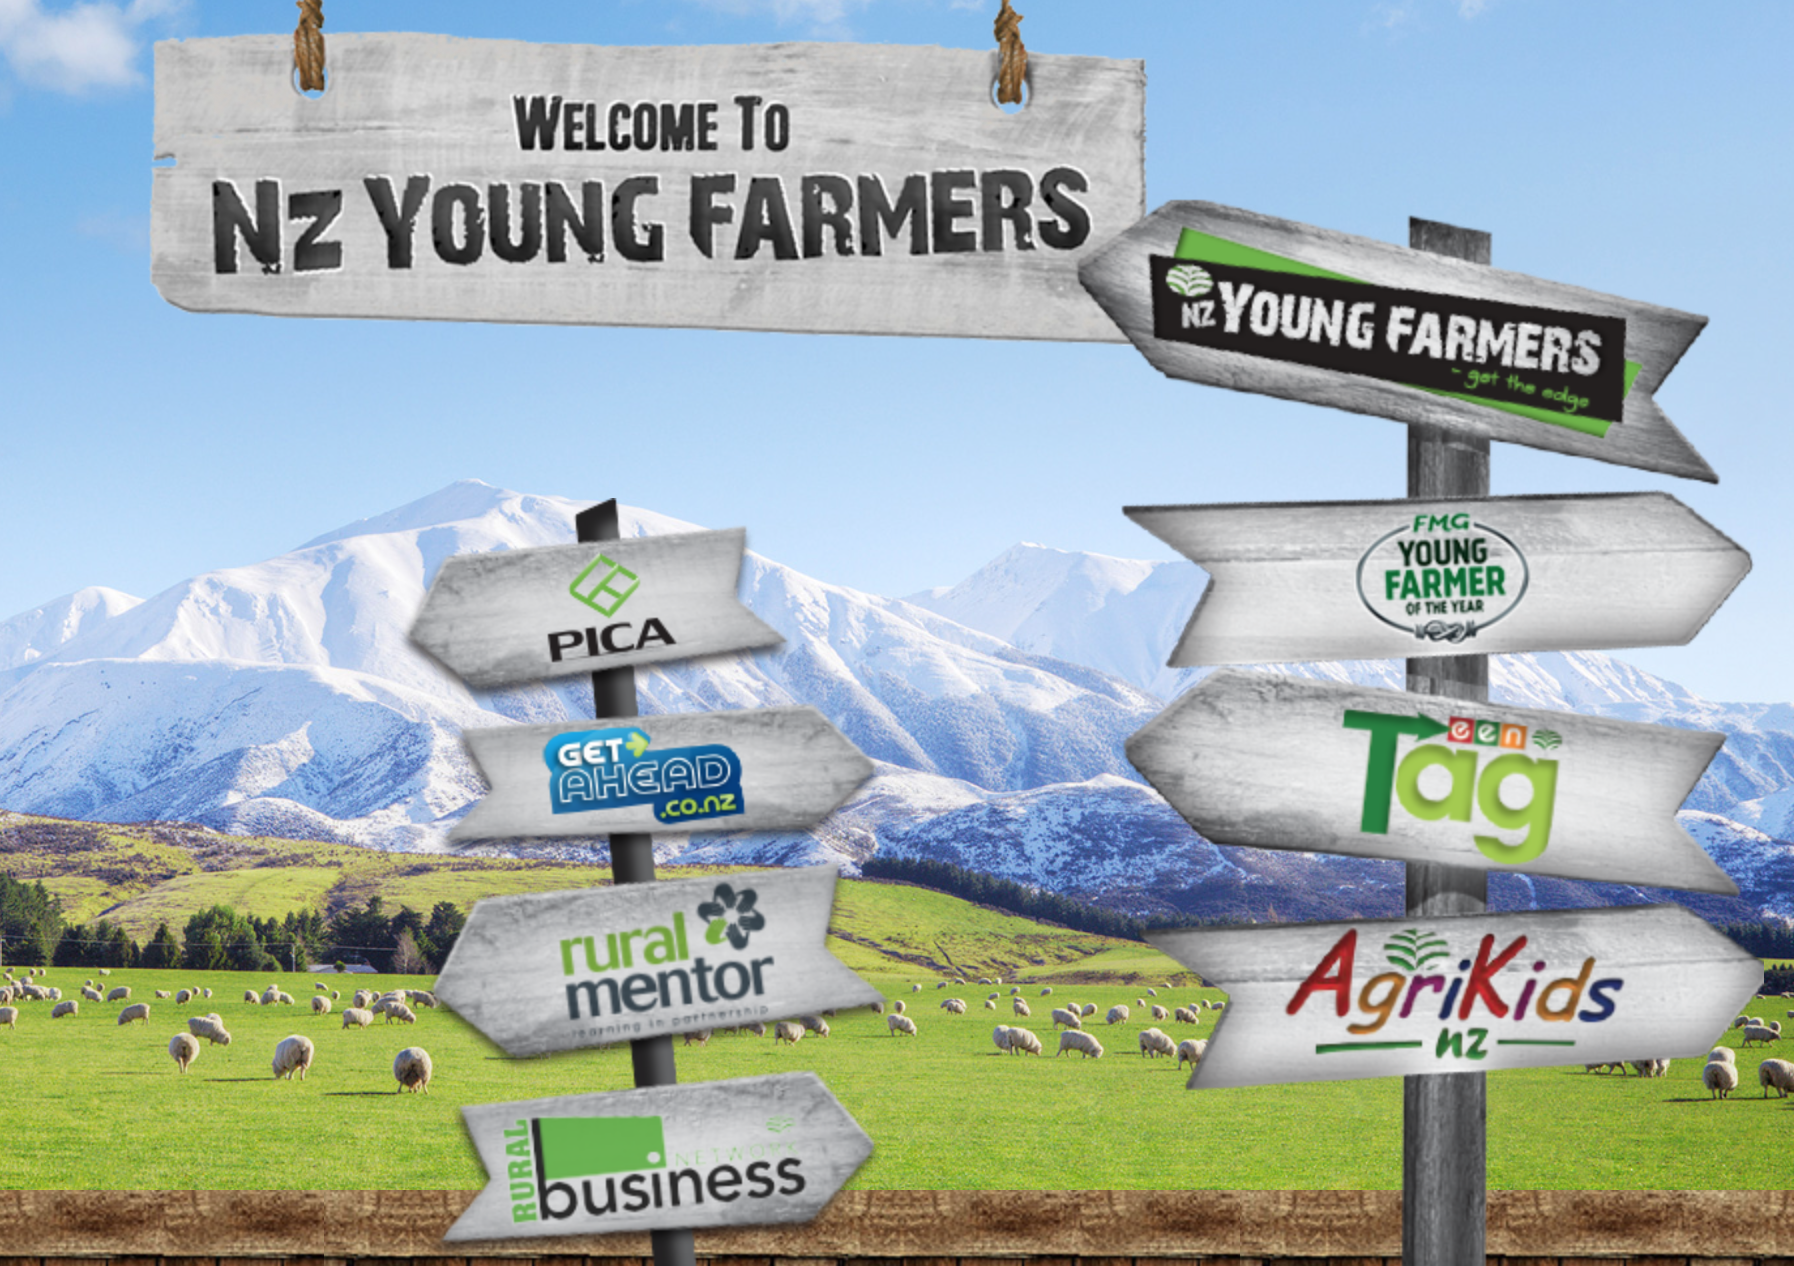 Young Farmers - Pop by the NZ Young Farmers site to find out about careers and the future of food, and how to become a part of this exciting industry.Catch any of the following:The Amazing Race activity,Tug of War,Gate hanging Competition,Agrikids Colouring Competition,Careers infoFind them: On the corner of N Road and E Road next to Careers and Education Hub